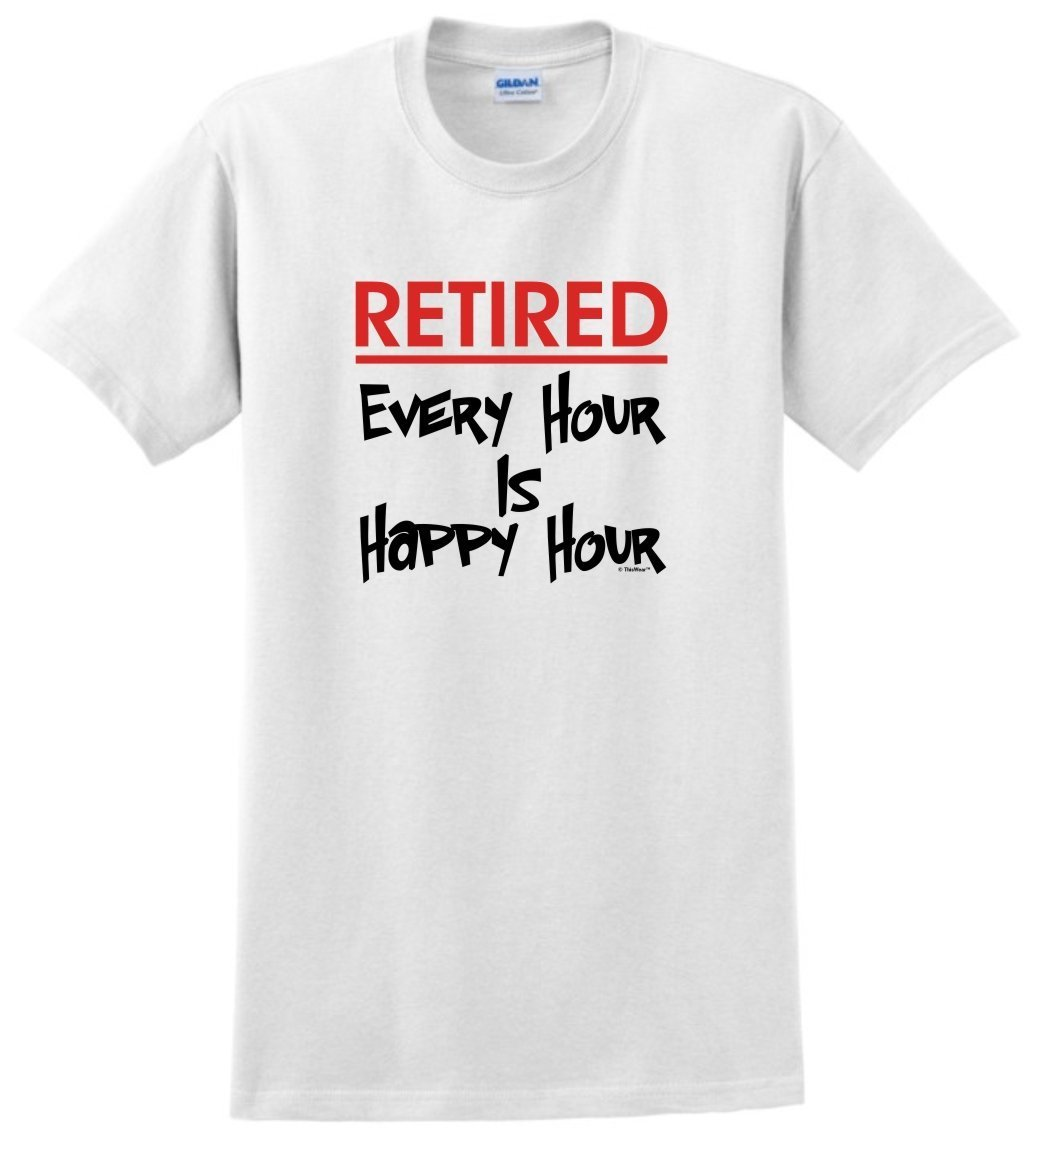 Loo Show S Retired Every Hour Is Happy Hour T Shirt Tee